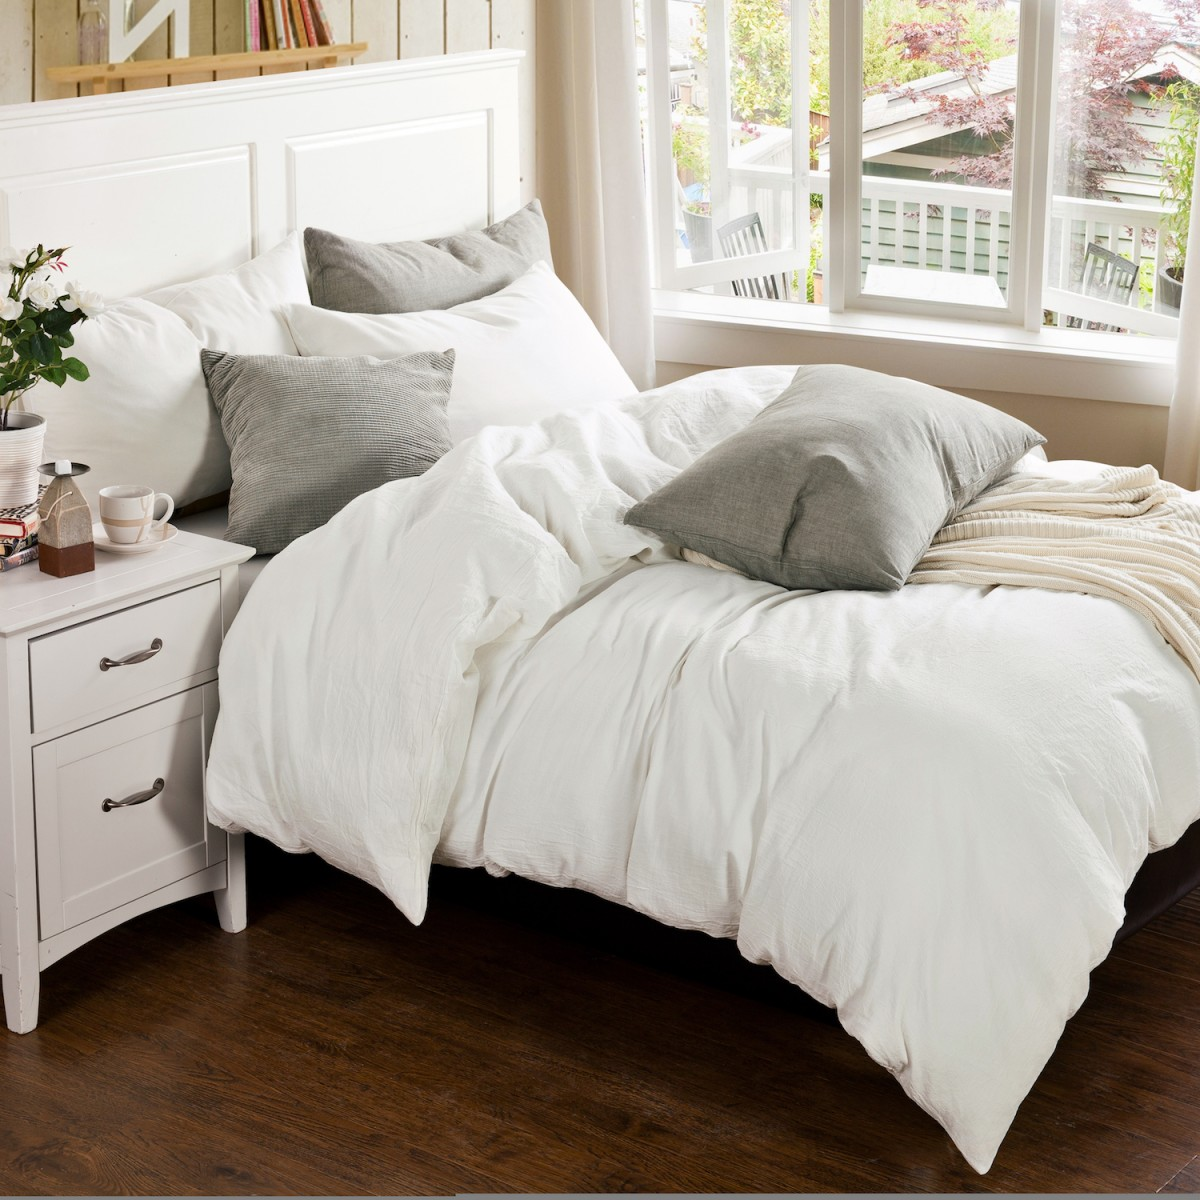 parure coton lav linge de lit de qualit tradition des vosges. Black Bedroom Furniture Sets. Home Design Ideas